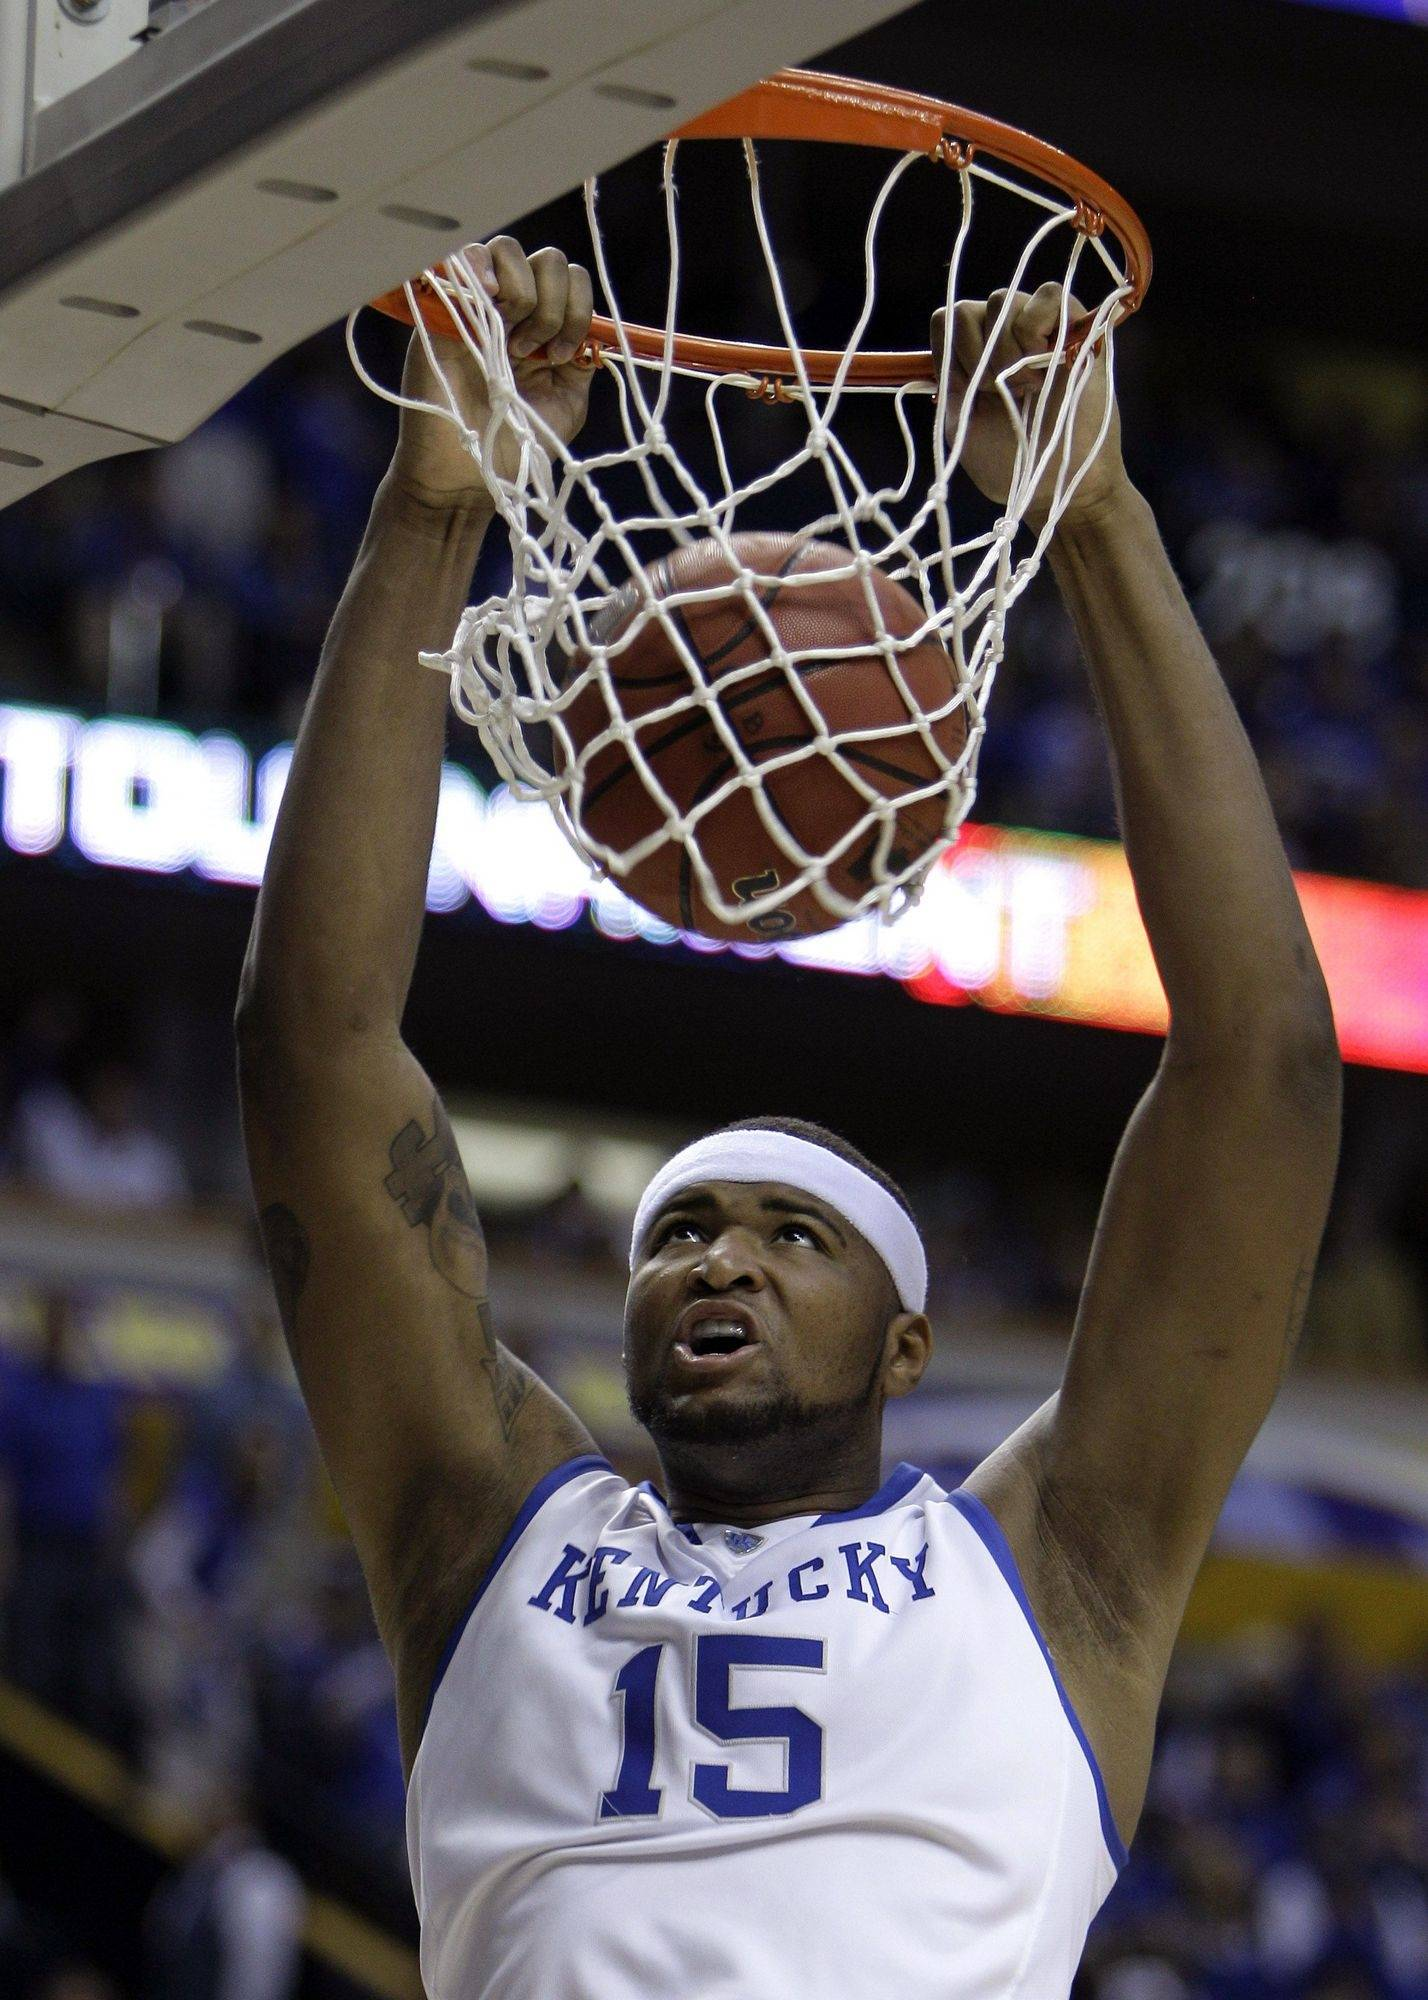 Freshman forward DeMarcus Cousins helped Kentucky get to overtime in the SEC title game Sunday, and guard John Wall led the Wildcats to victory.